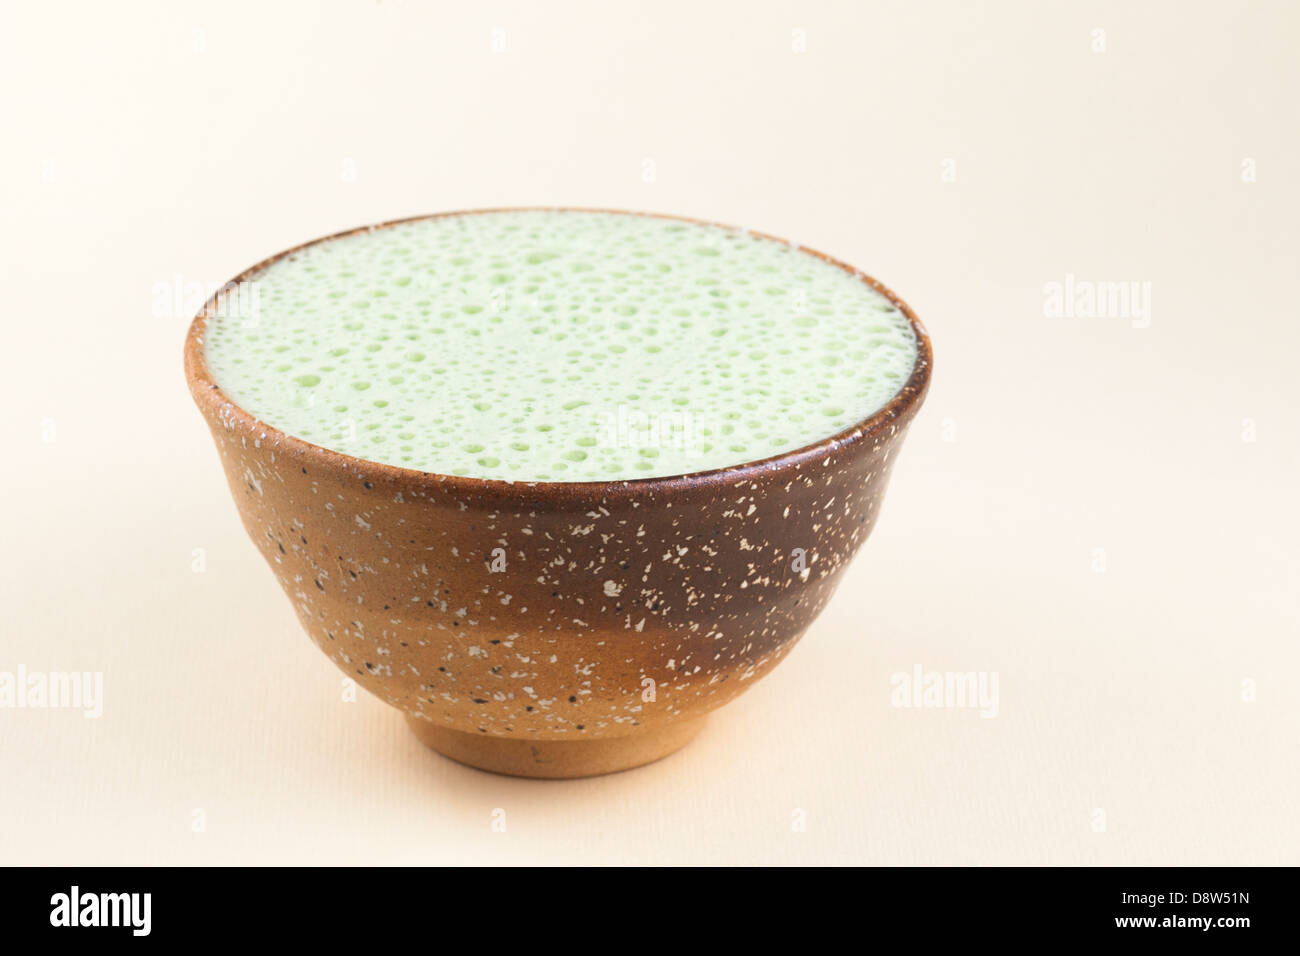 Matcha latte made with almond milk served in matcha bowl - Stock Image